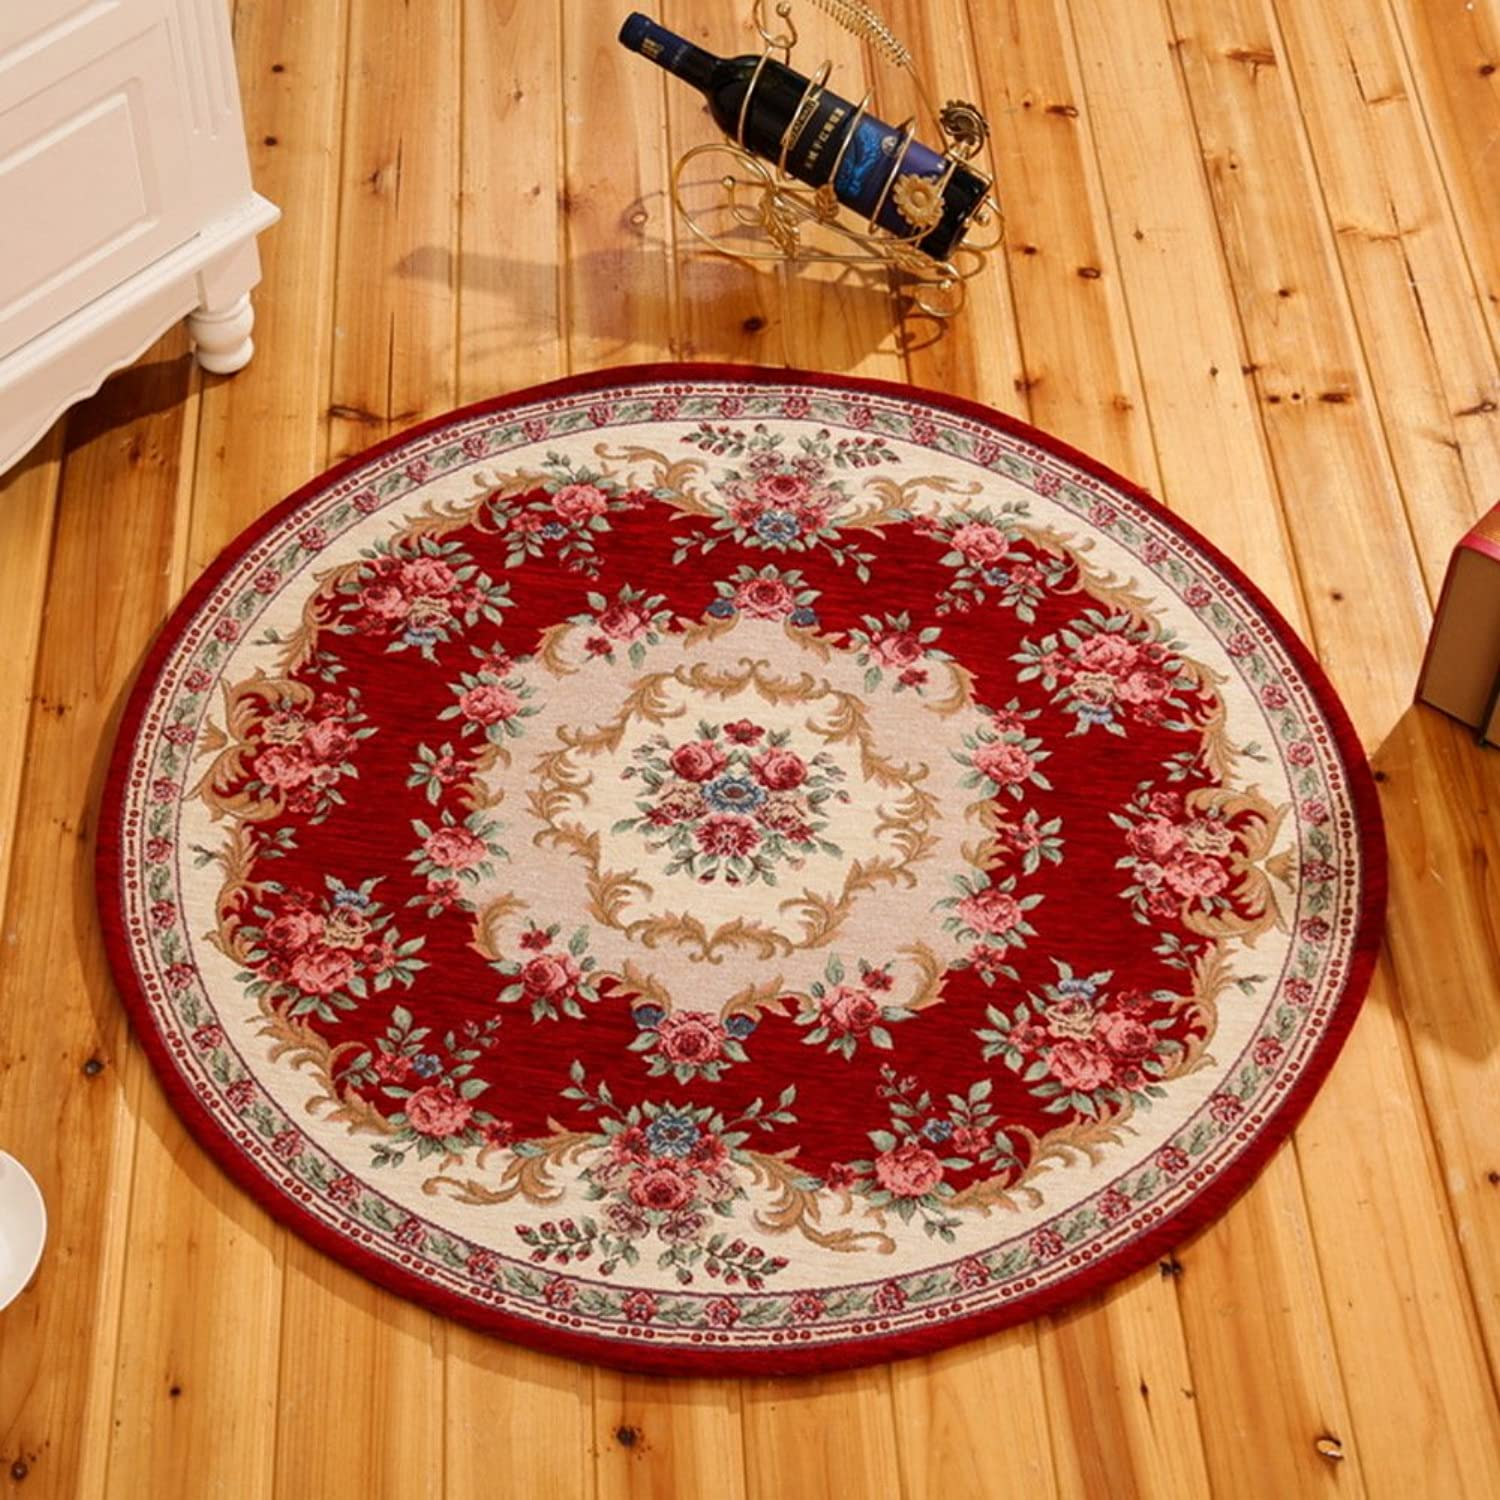 DXG&FX European carpet non-slip round chair mat bedroom mat-F diameter120cm(47inch)